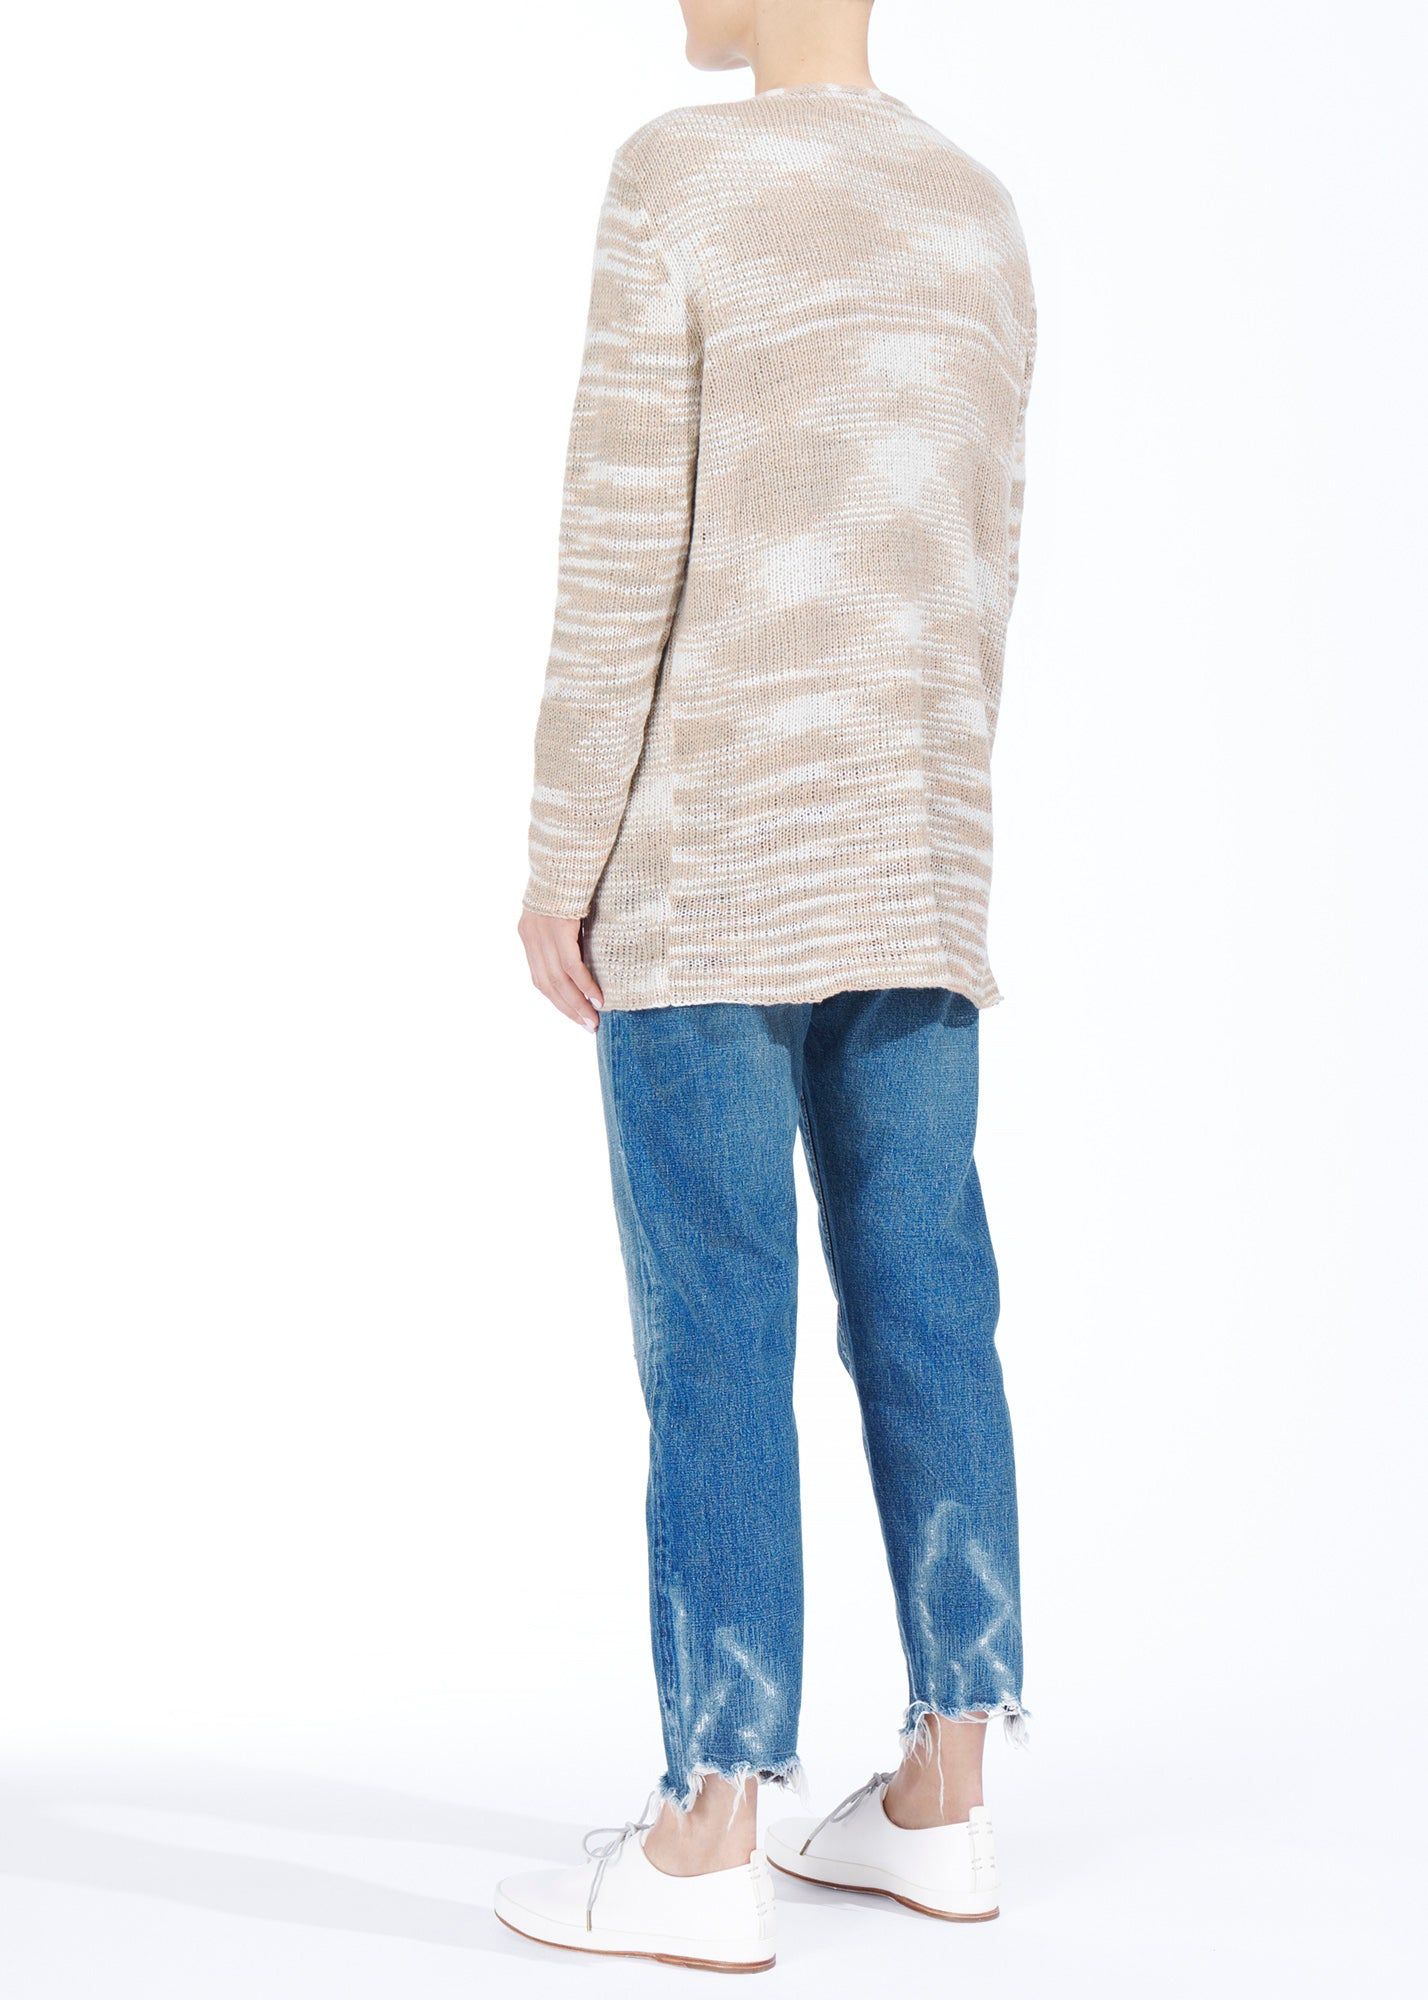 Flaco Simple Cardigan Oatmeal-White